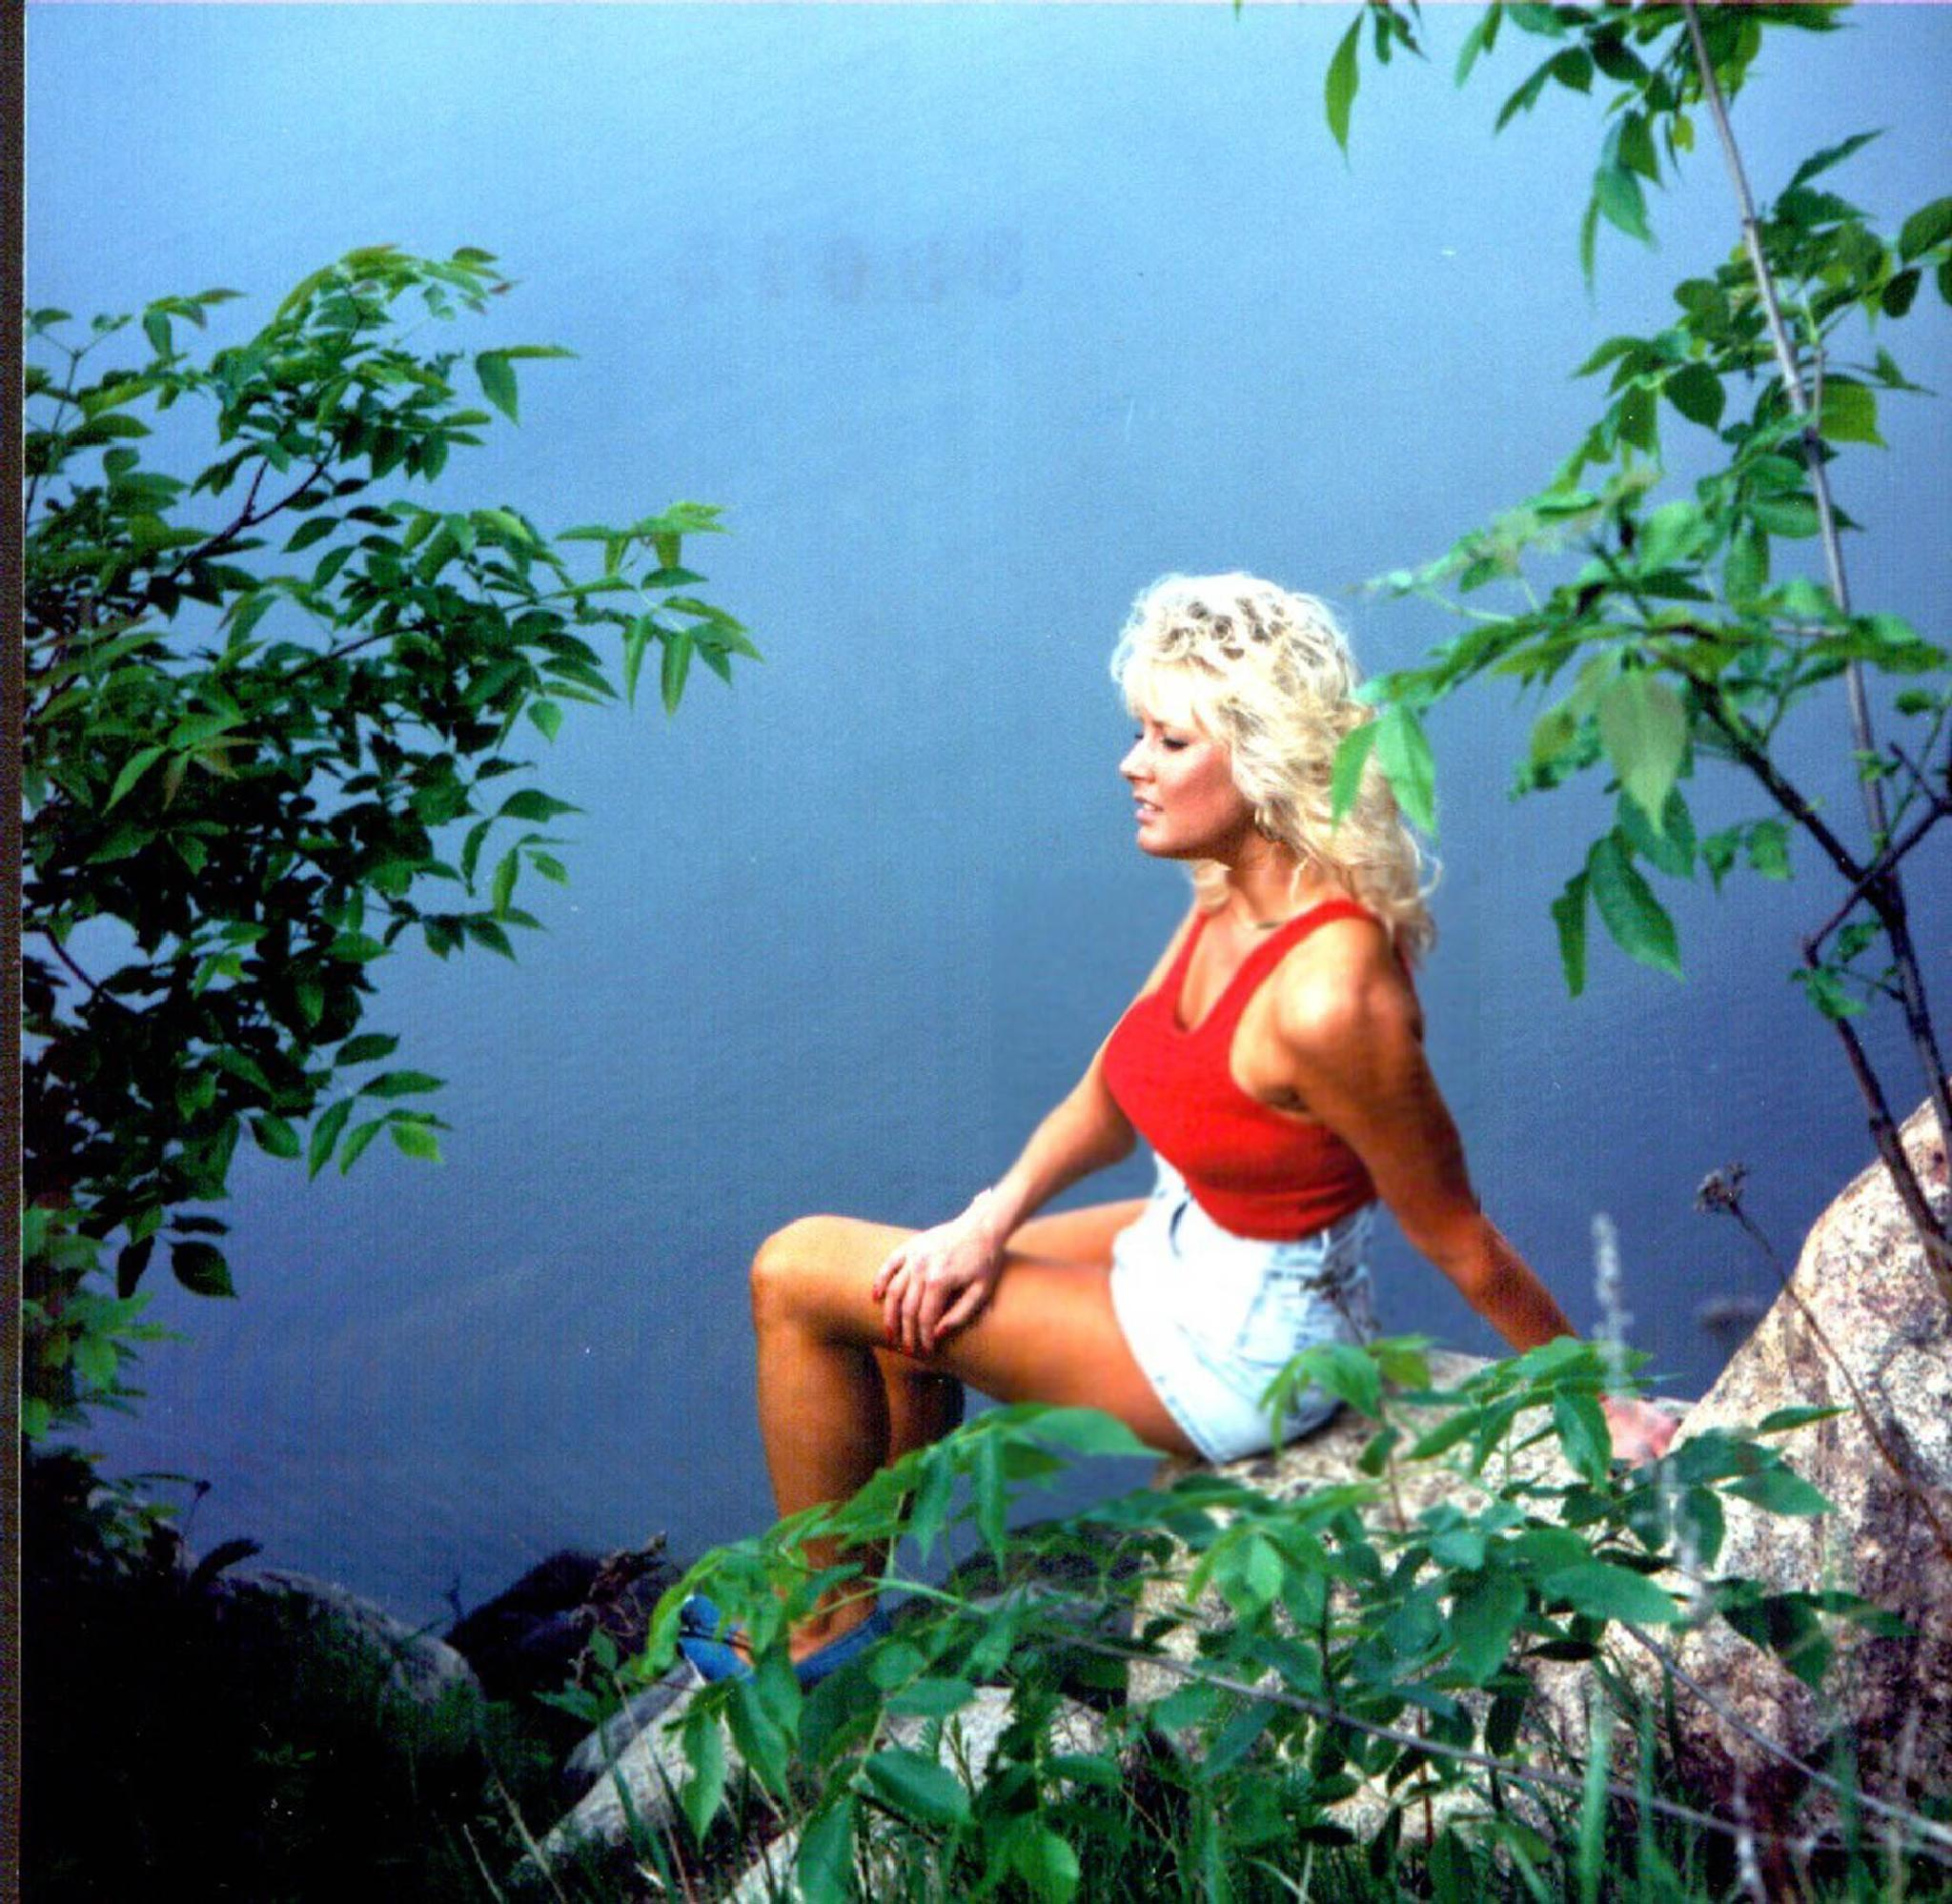 Debbie on the rocks by wes.johnson.58